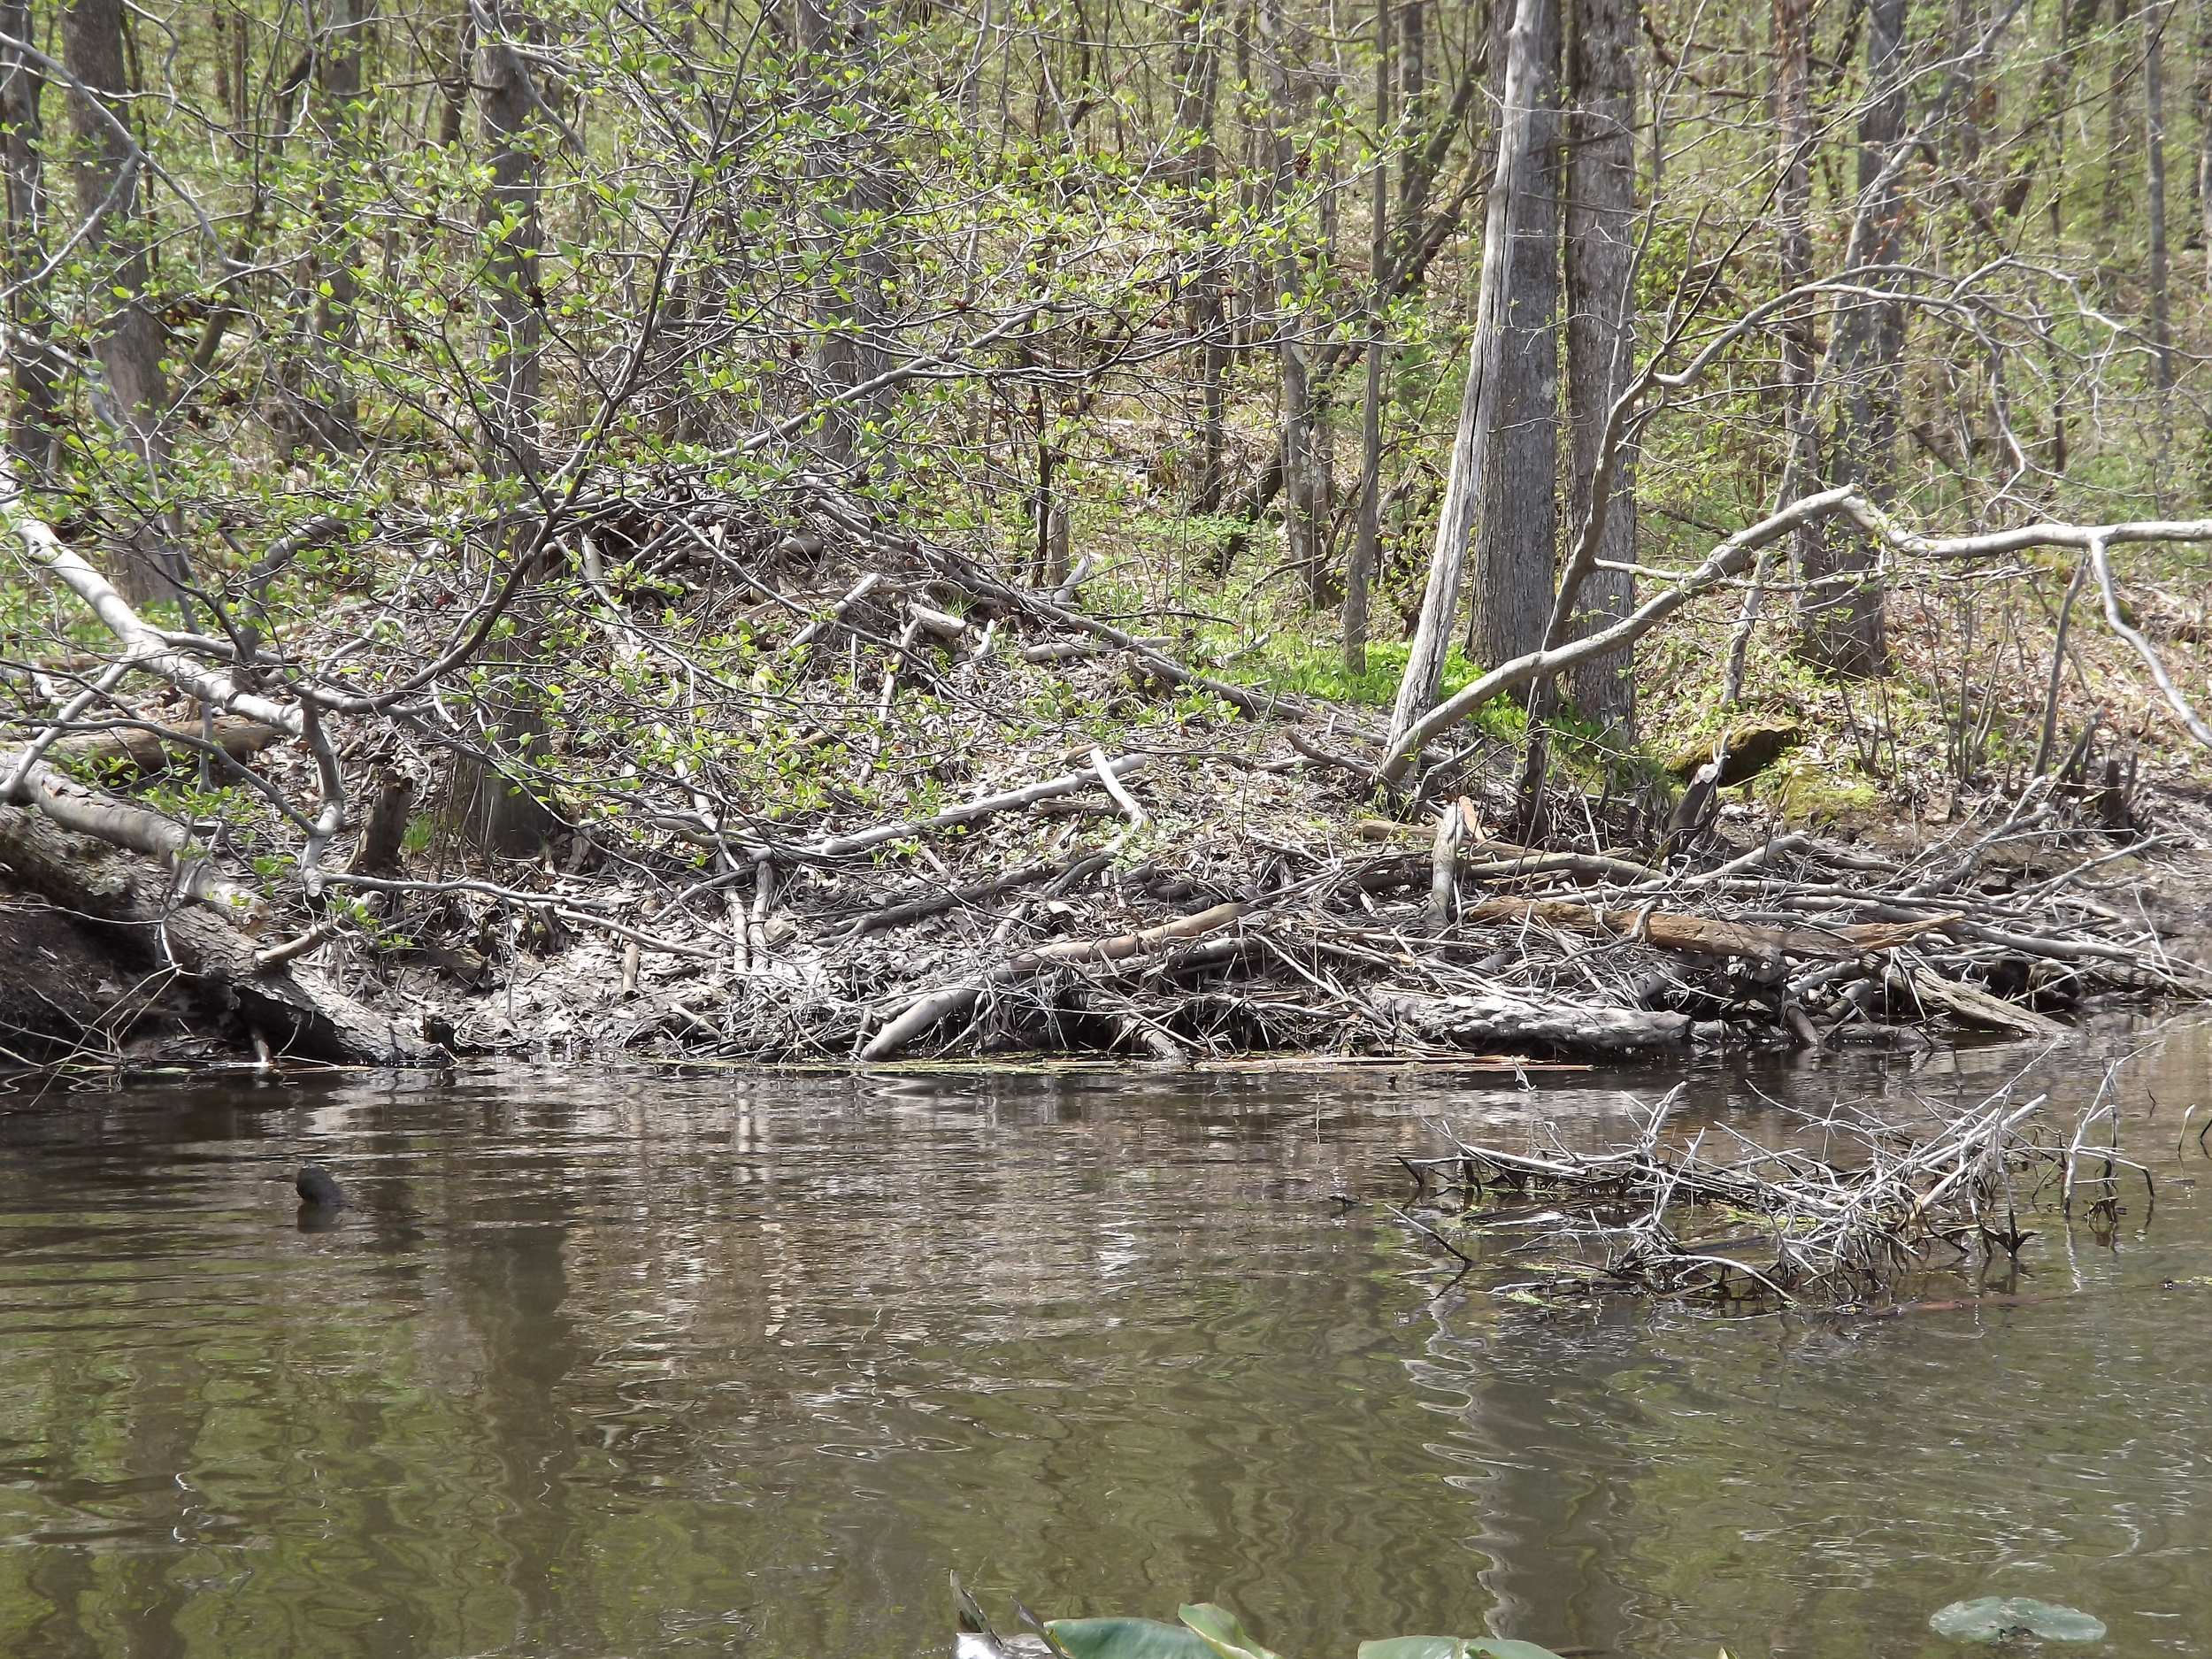 We found this Beaver lodge along the eastern shore above the dam.  The water was only a few feet deep and clear, but unfortunately we didn't see any Beaver.